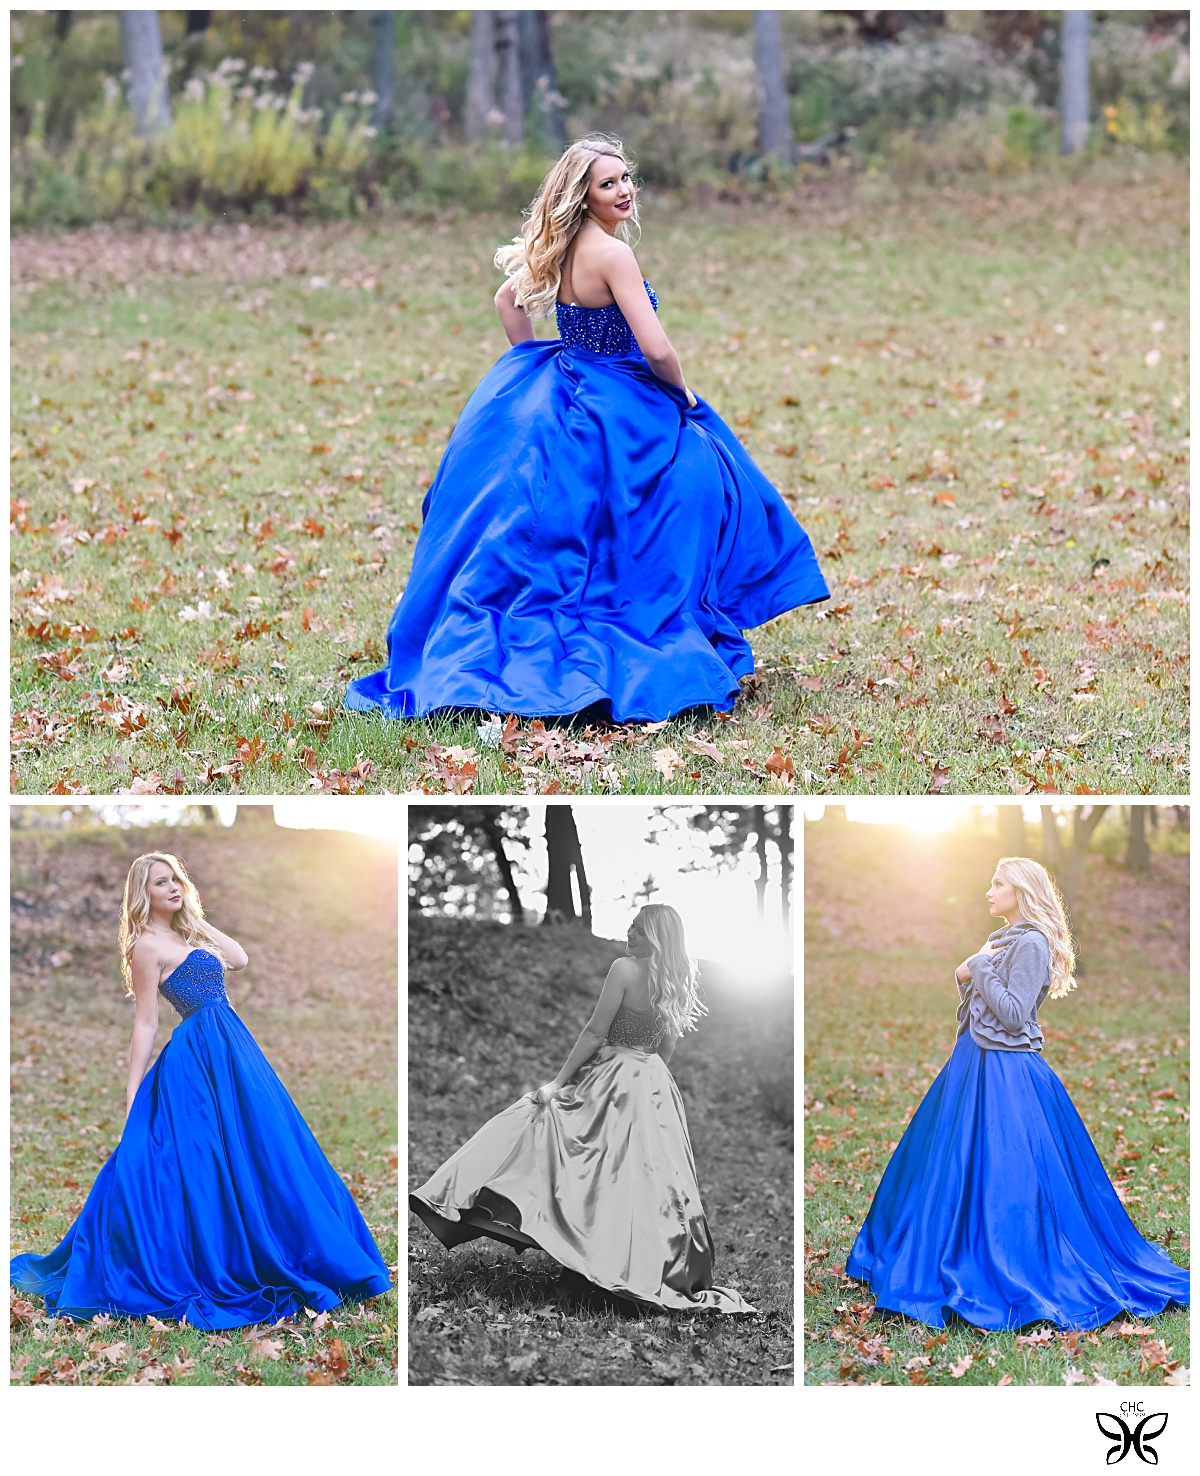 This blue dressed inspired our photo session number 2! We got lucky with the sun setting there and making her look like an angel.